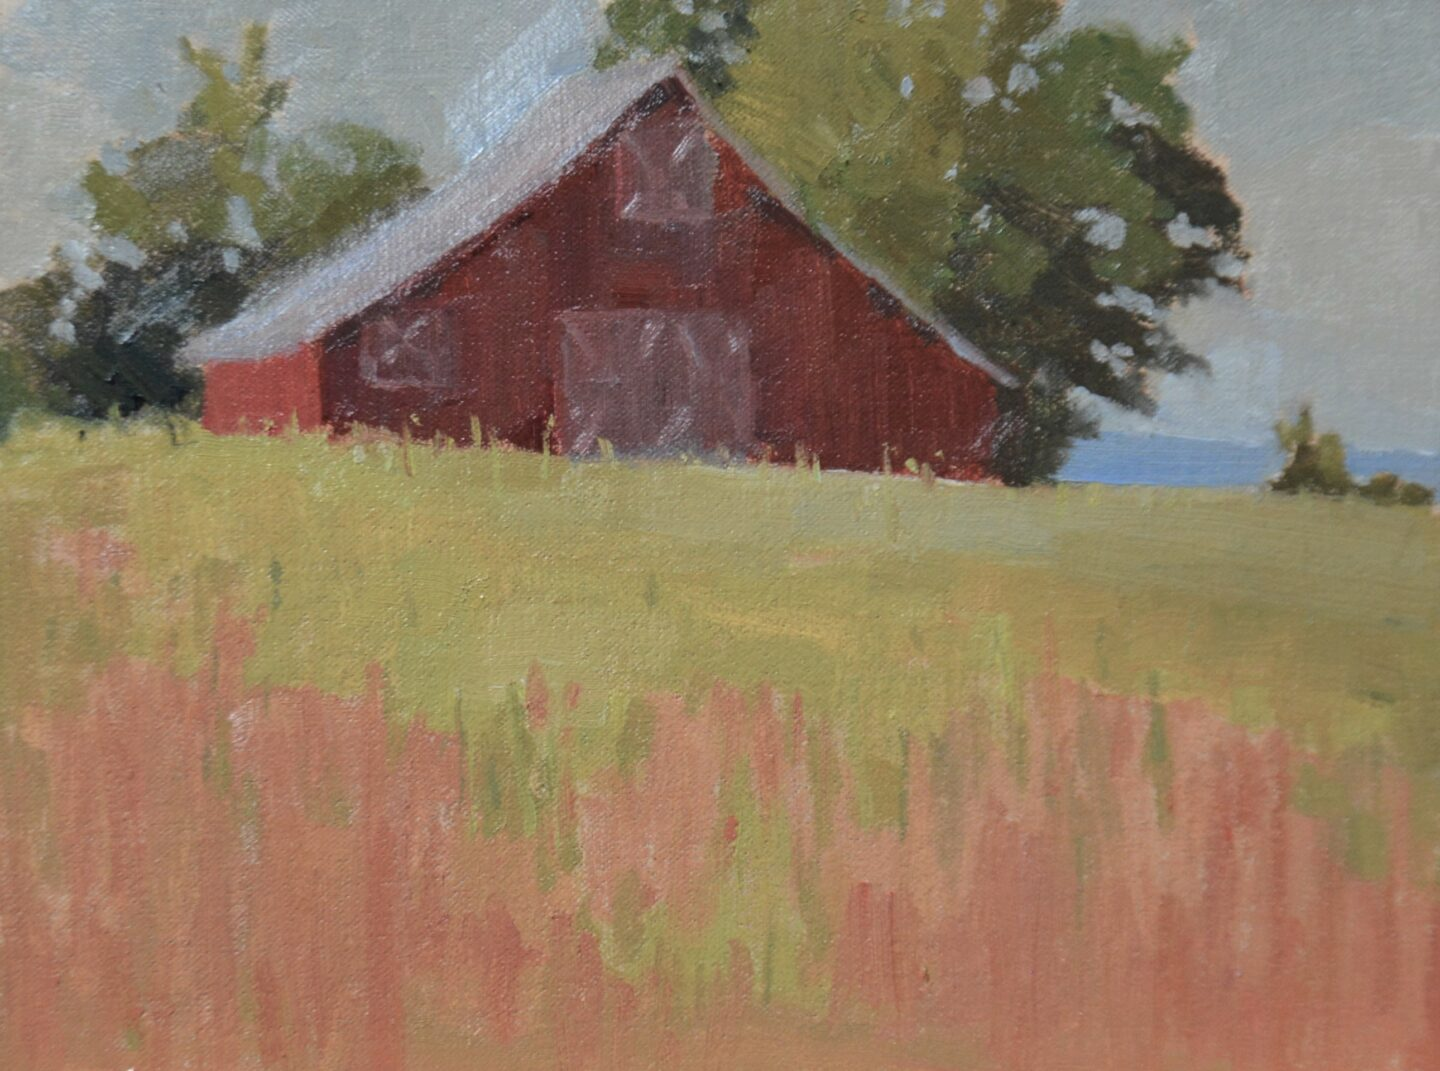 Texas Barn plein air oil painting.